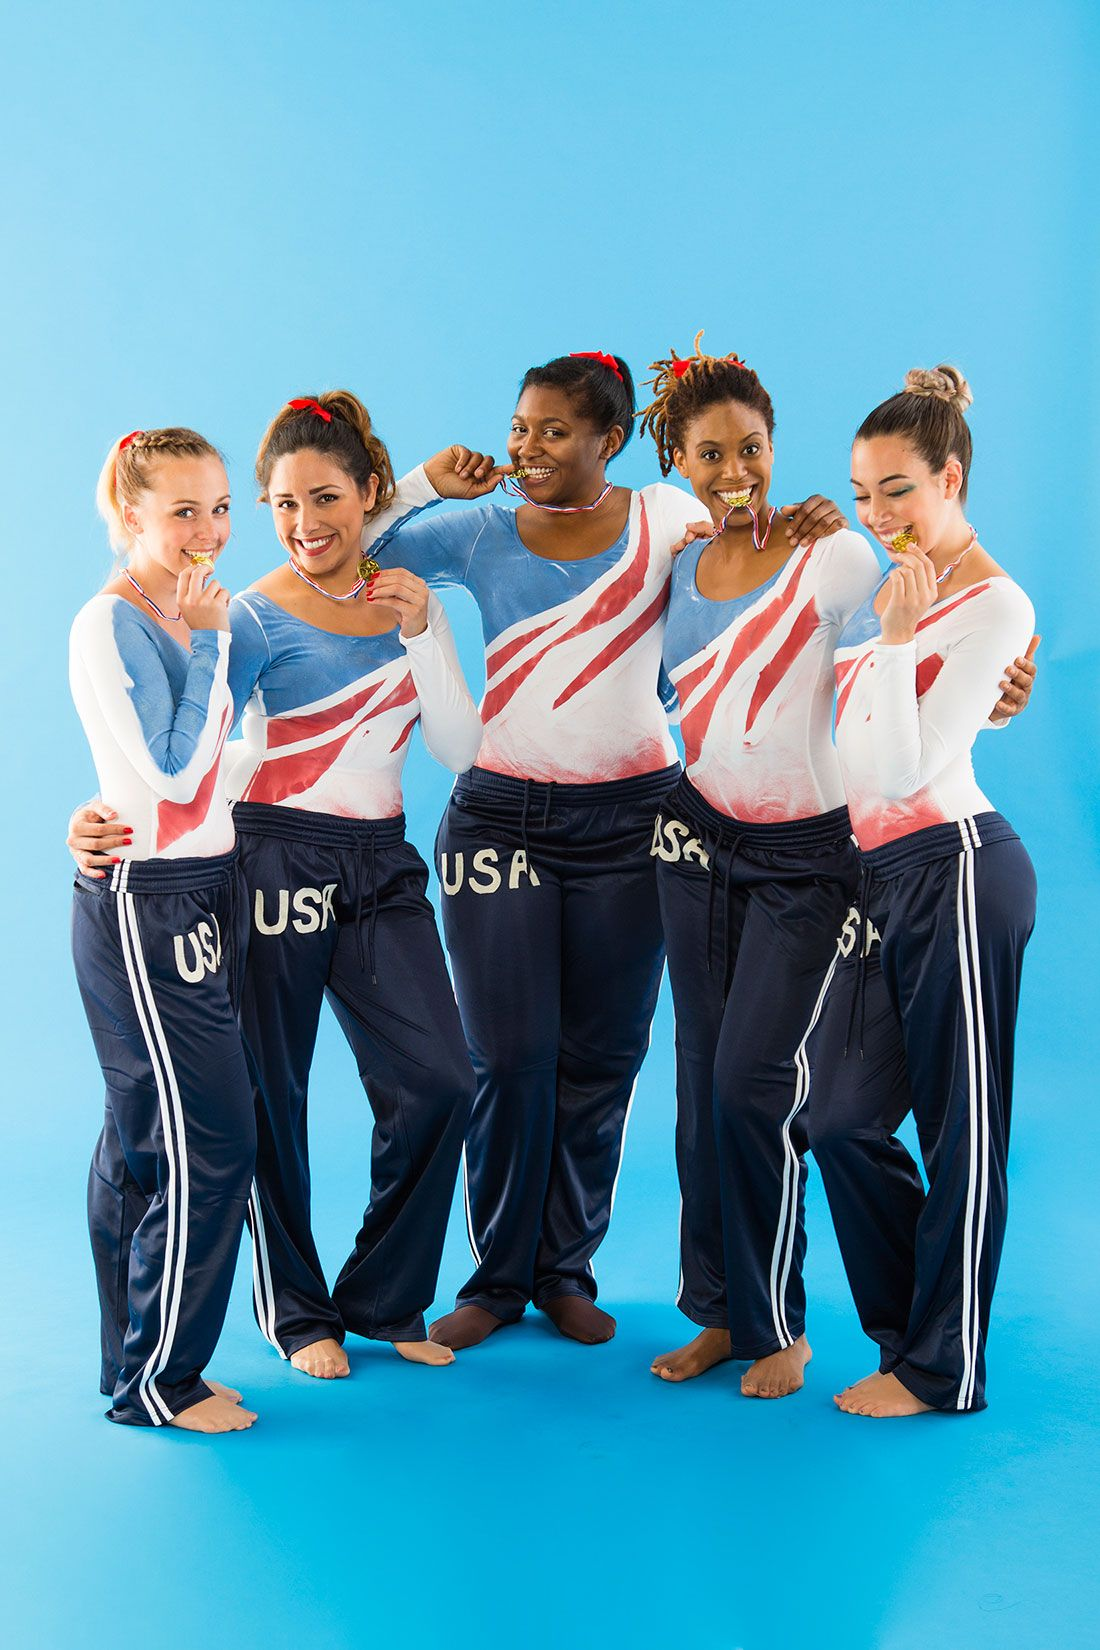 Win Olympic Gold Medal With Fab 5 Gymnastics